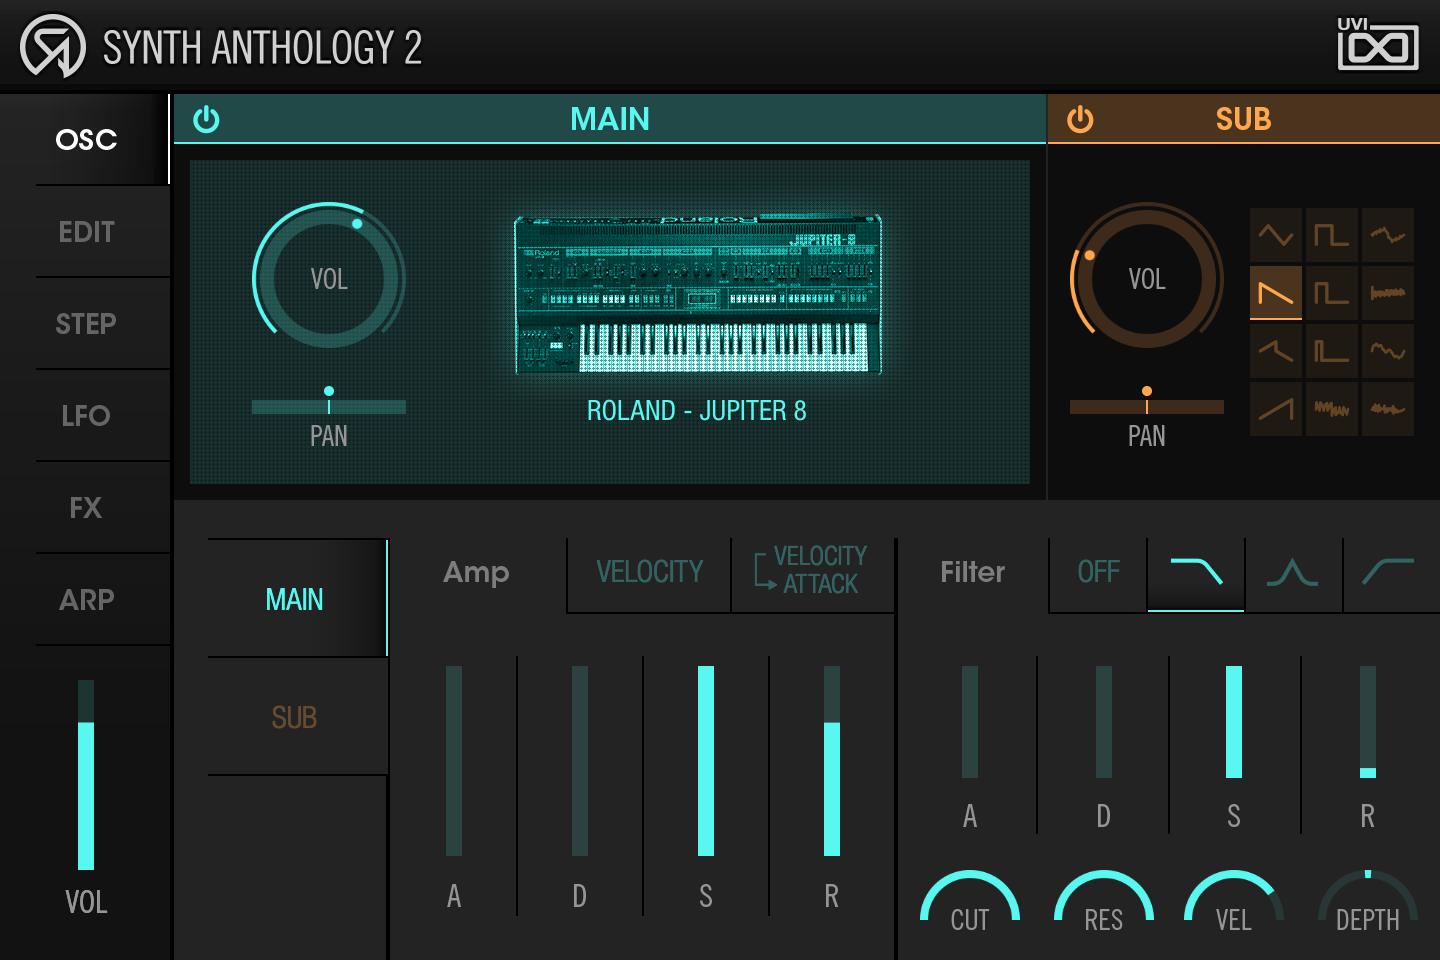 Synth Anthology 2